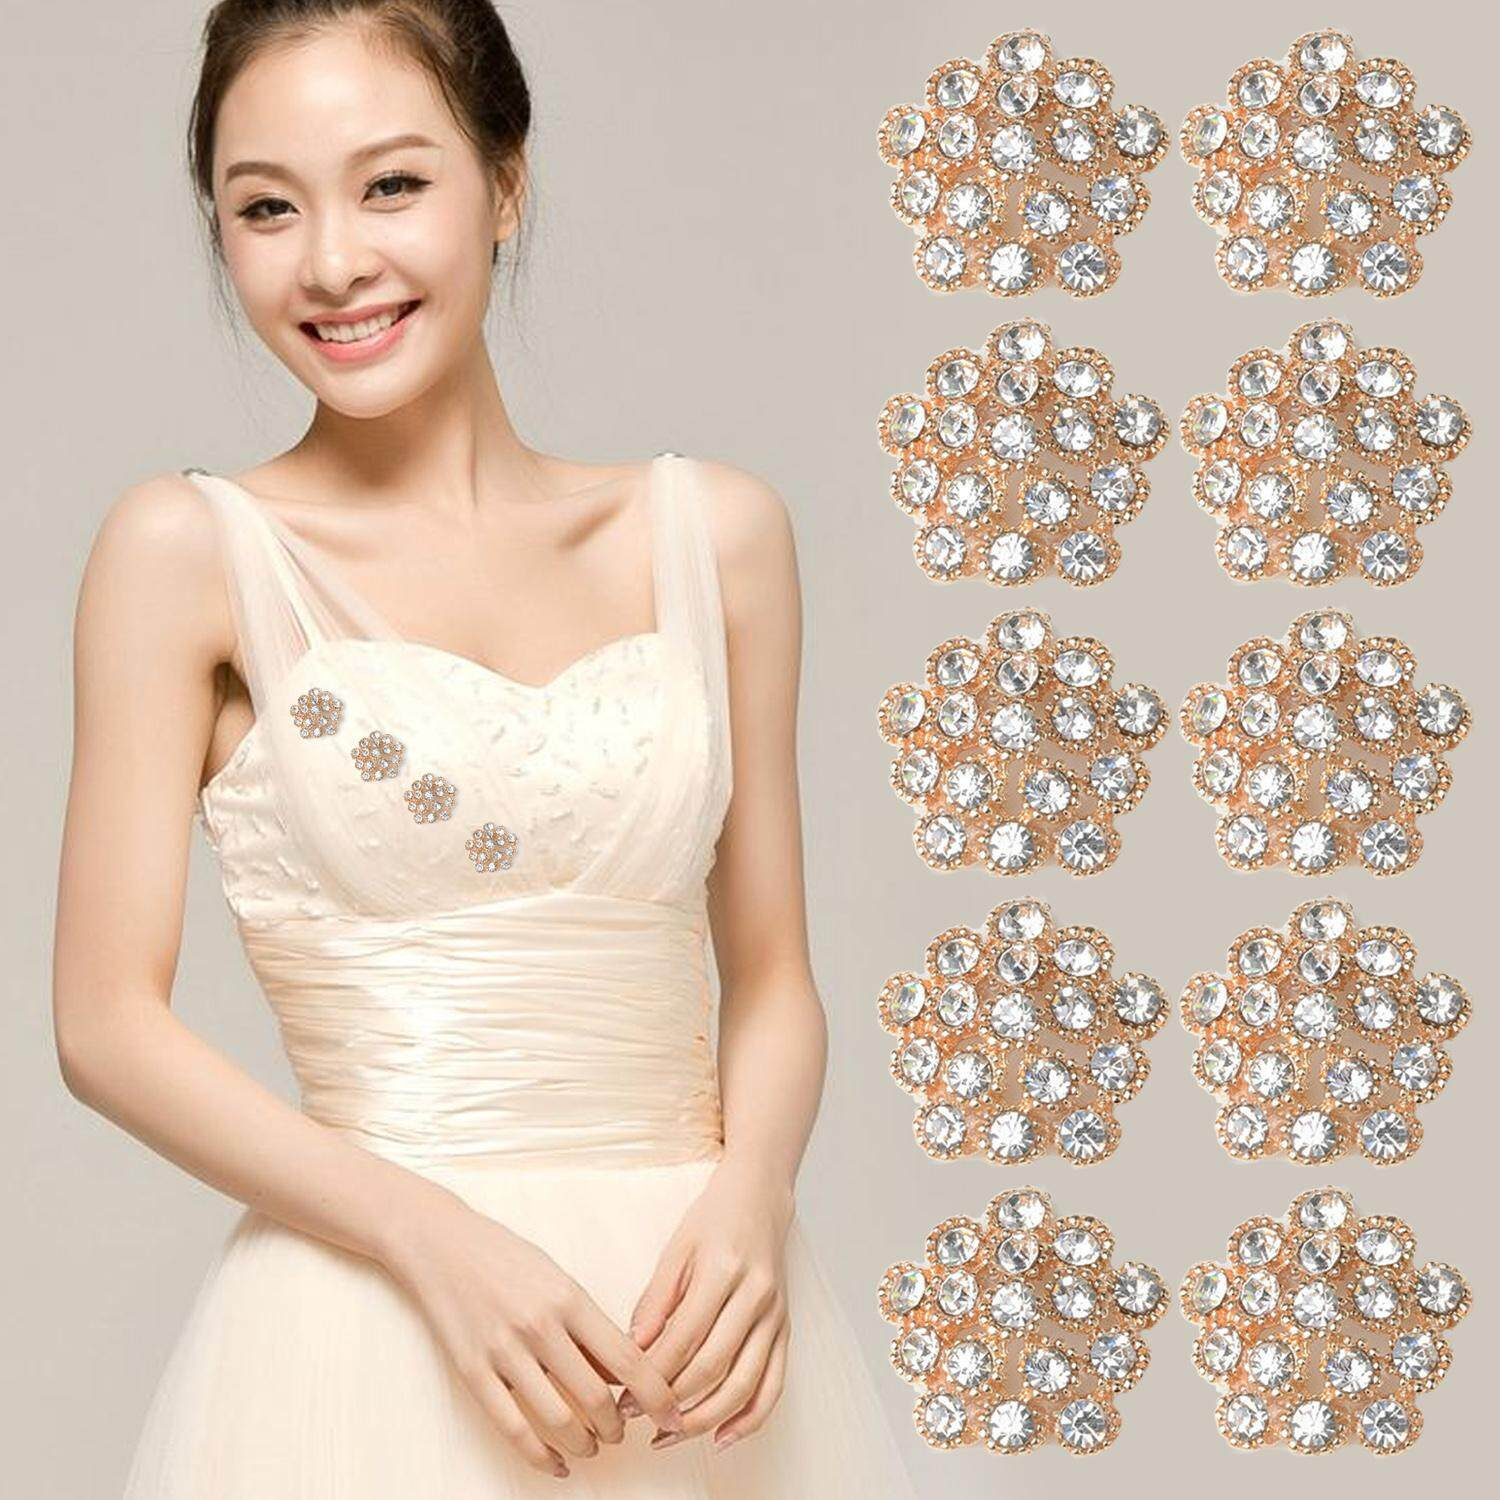 10Pcs Embellishments Rhinestone Faux Pearl Flowers for Craft Wedding Decorations